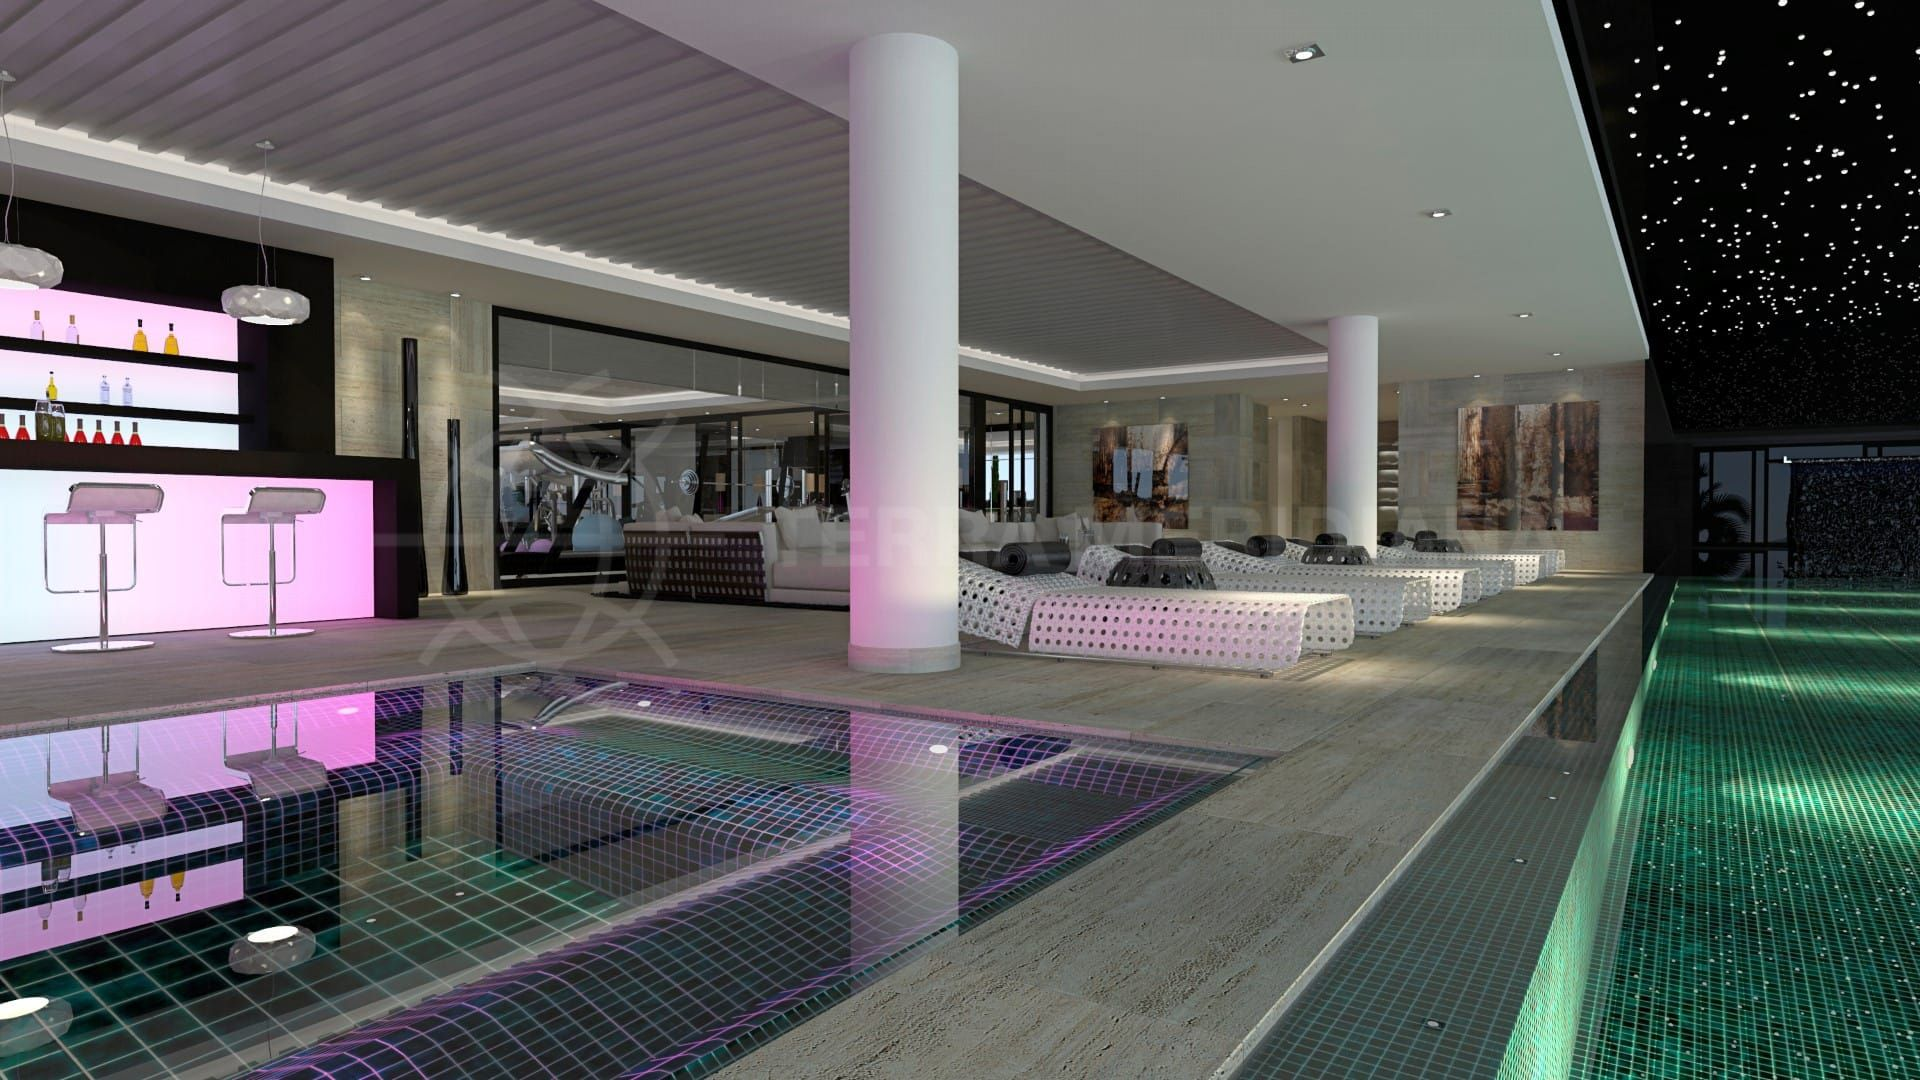 Terra meridiana awarded exclusivity for heaven 11 for Indoor natatorium design and energy recycling